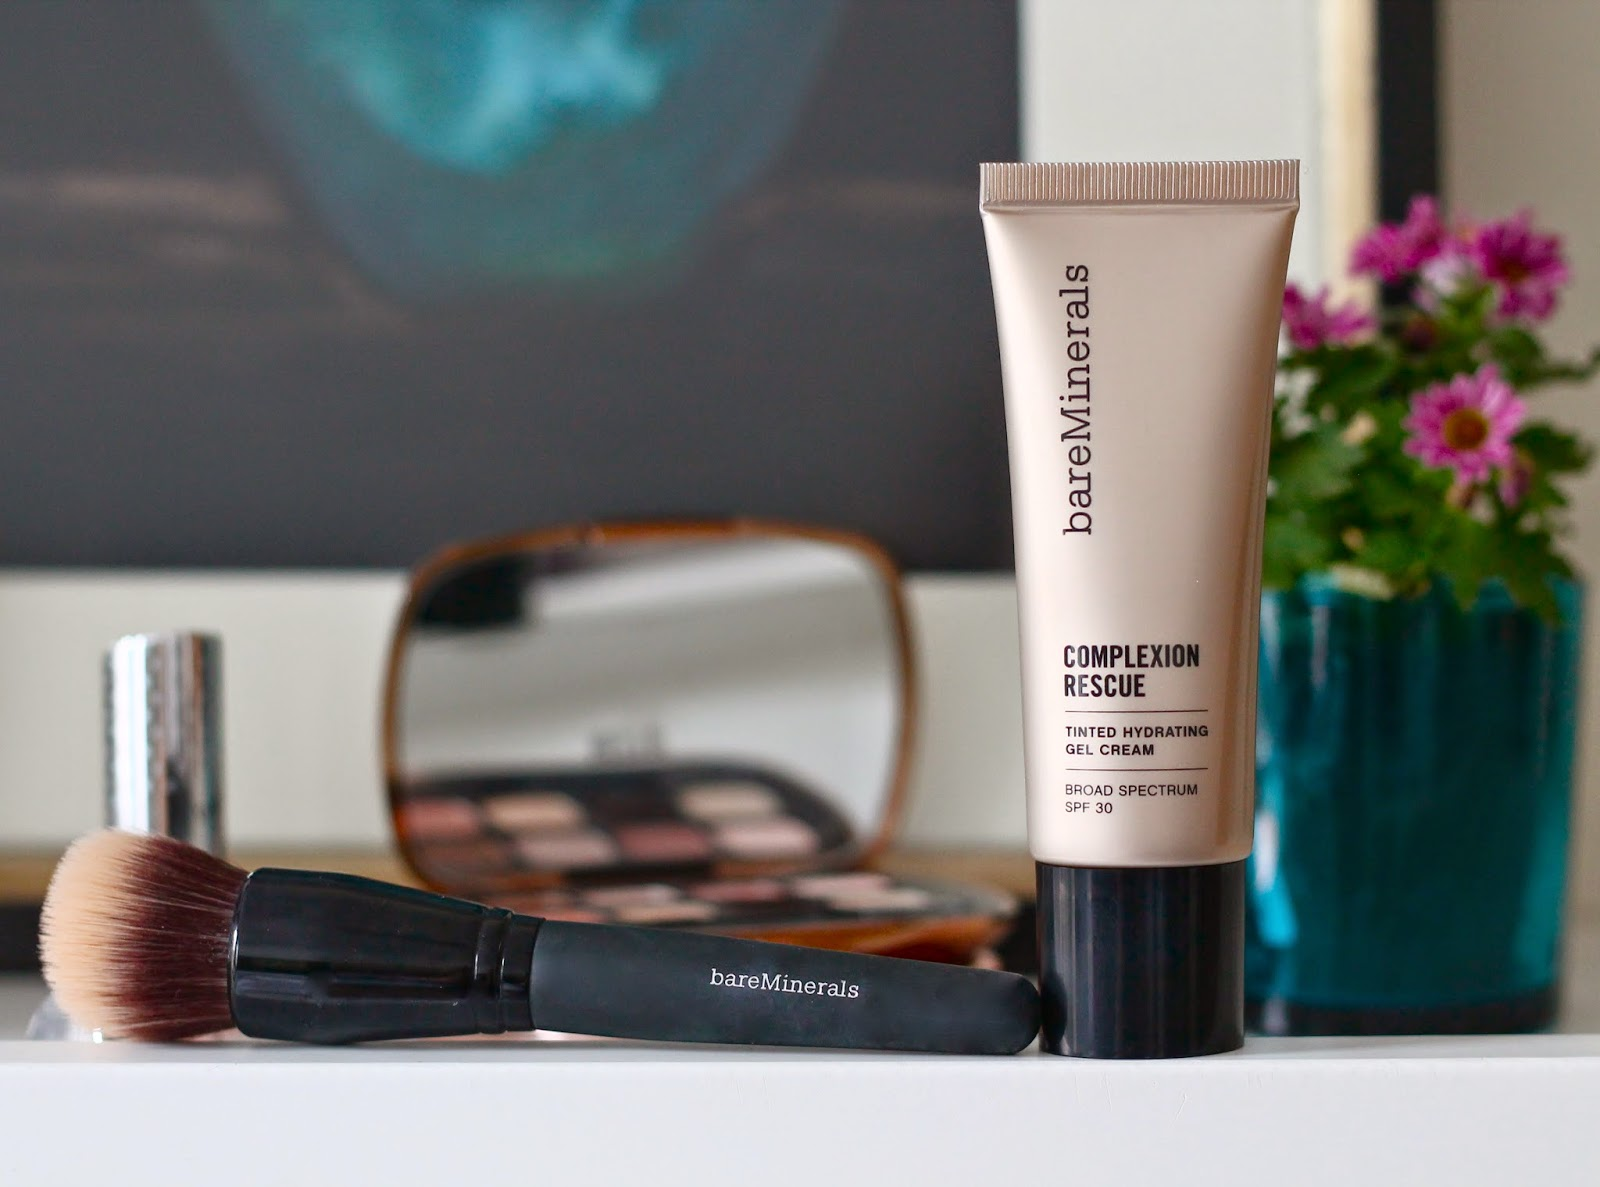 bareminerals best products, beauty beauty products for winter, bareminerals complexion rescue and how to use it,  best cc cream, best tinted moisturizer, natural makeup, natural beauty essentials